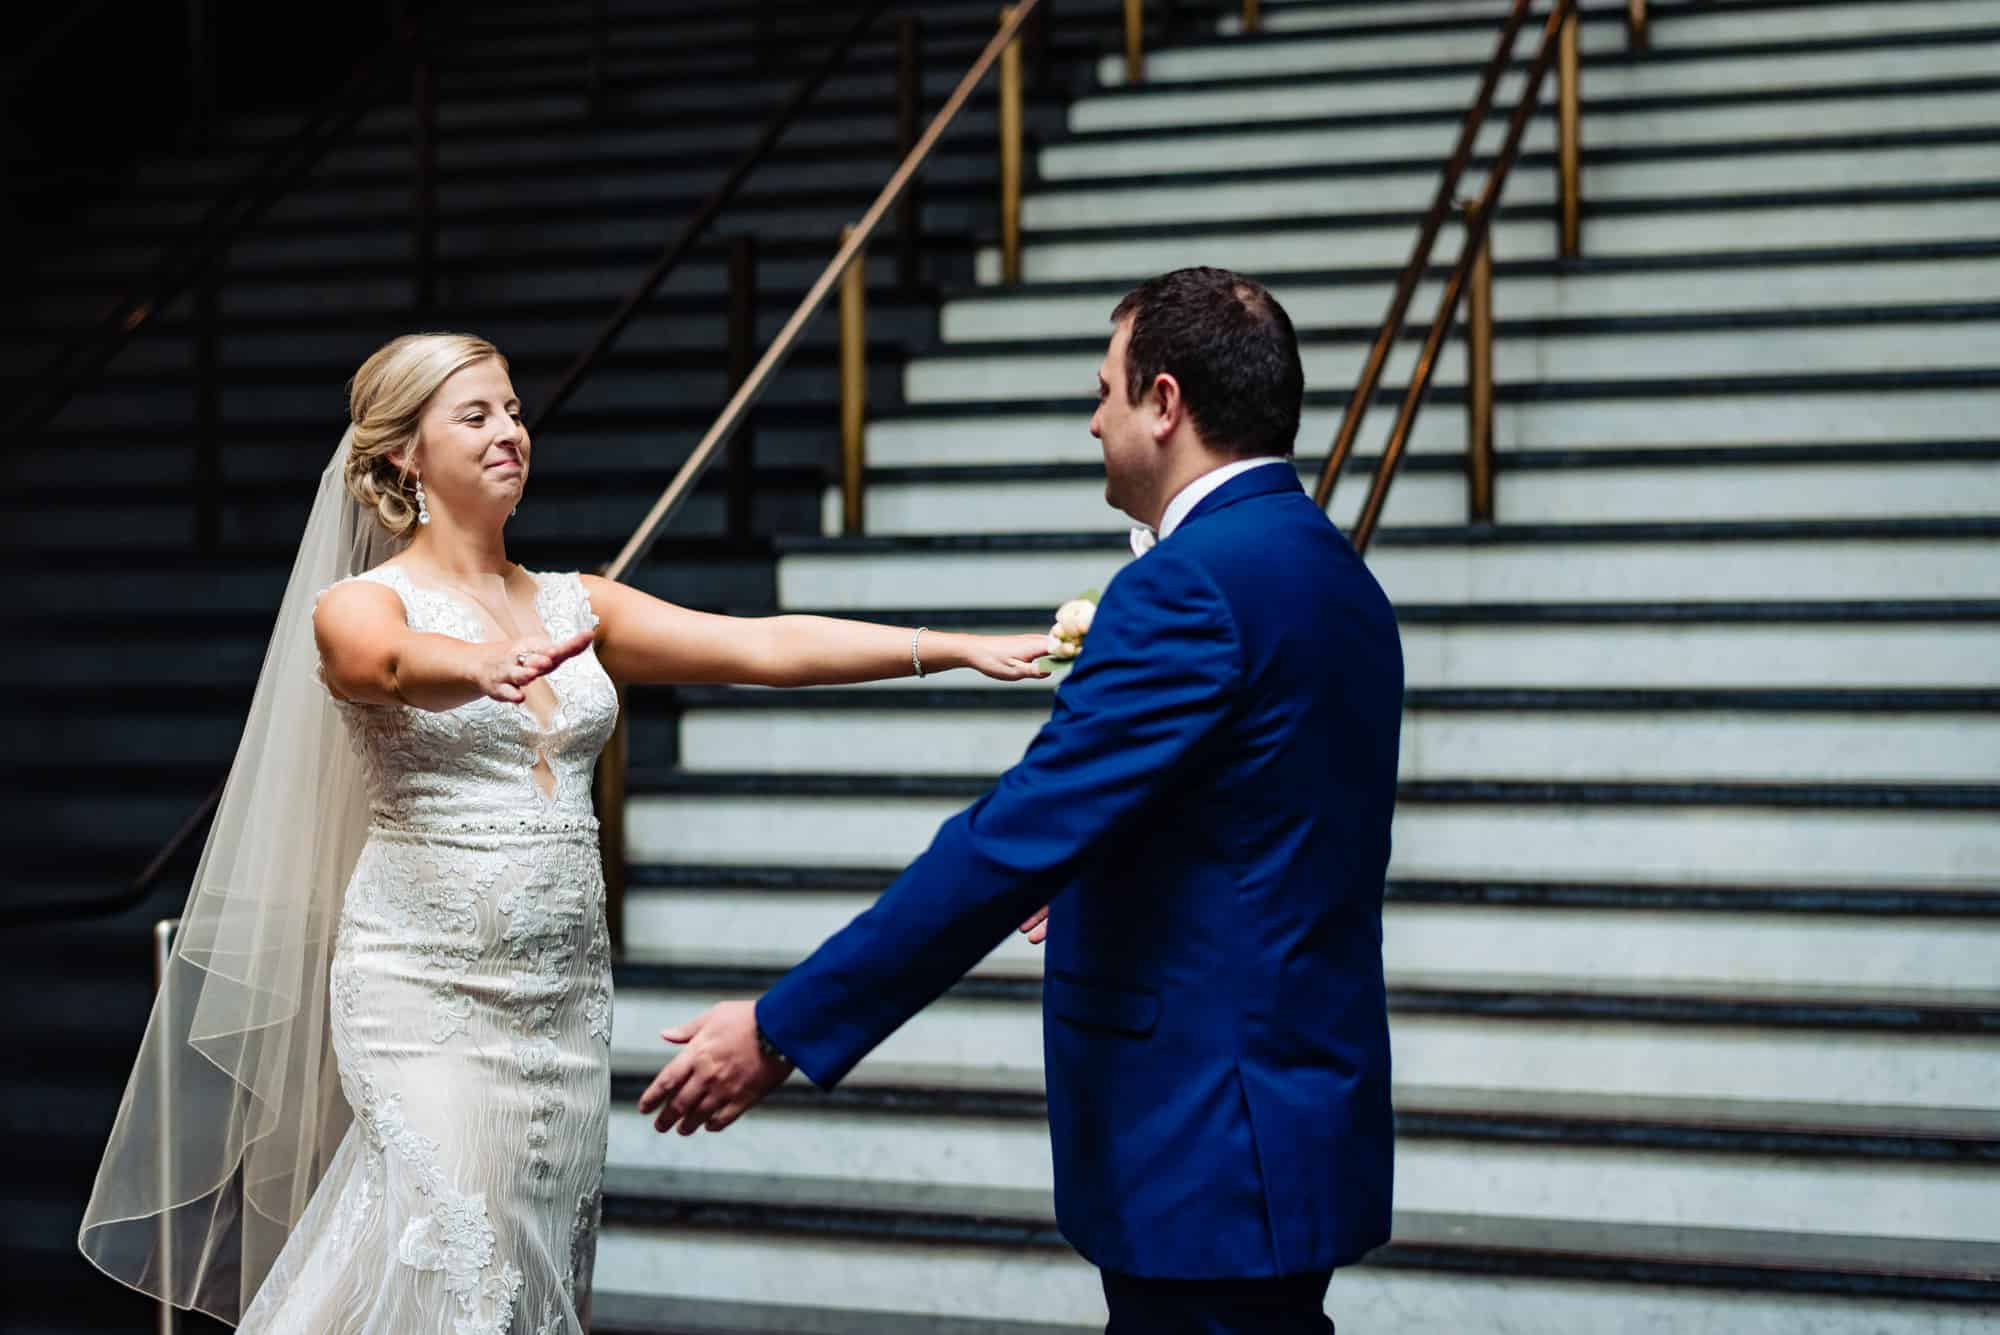 wedding day, bride and groom reaching for an embrace while smiling in a staircase